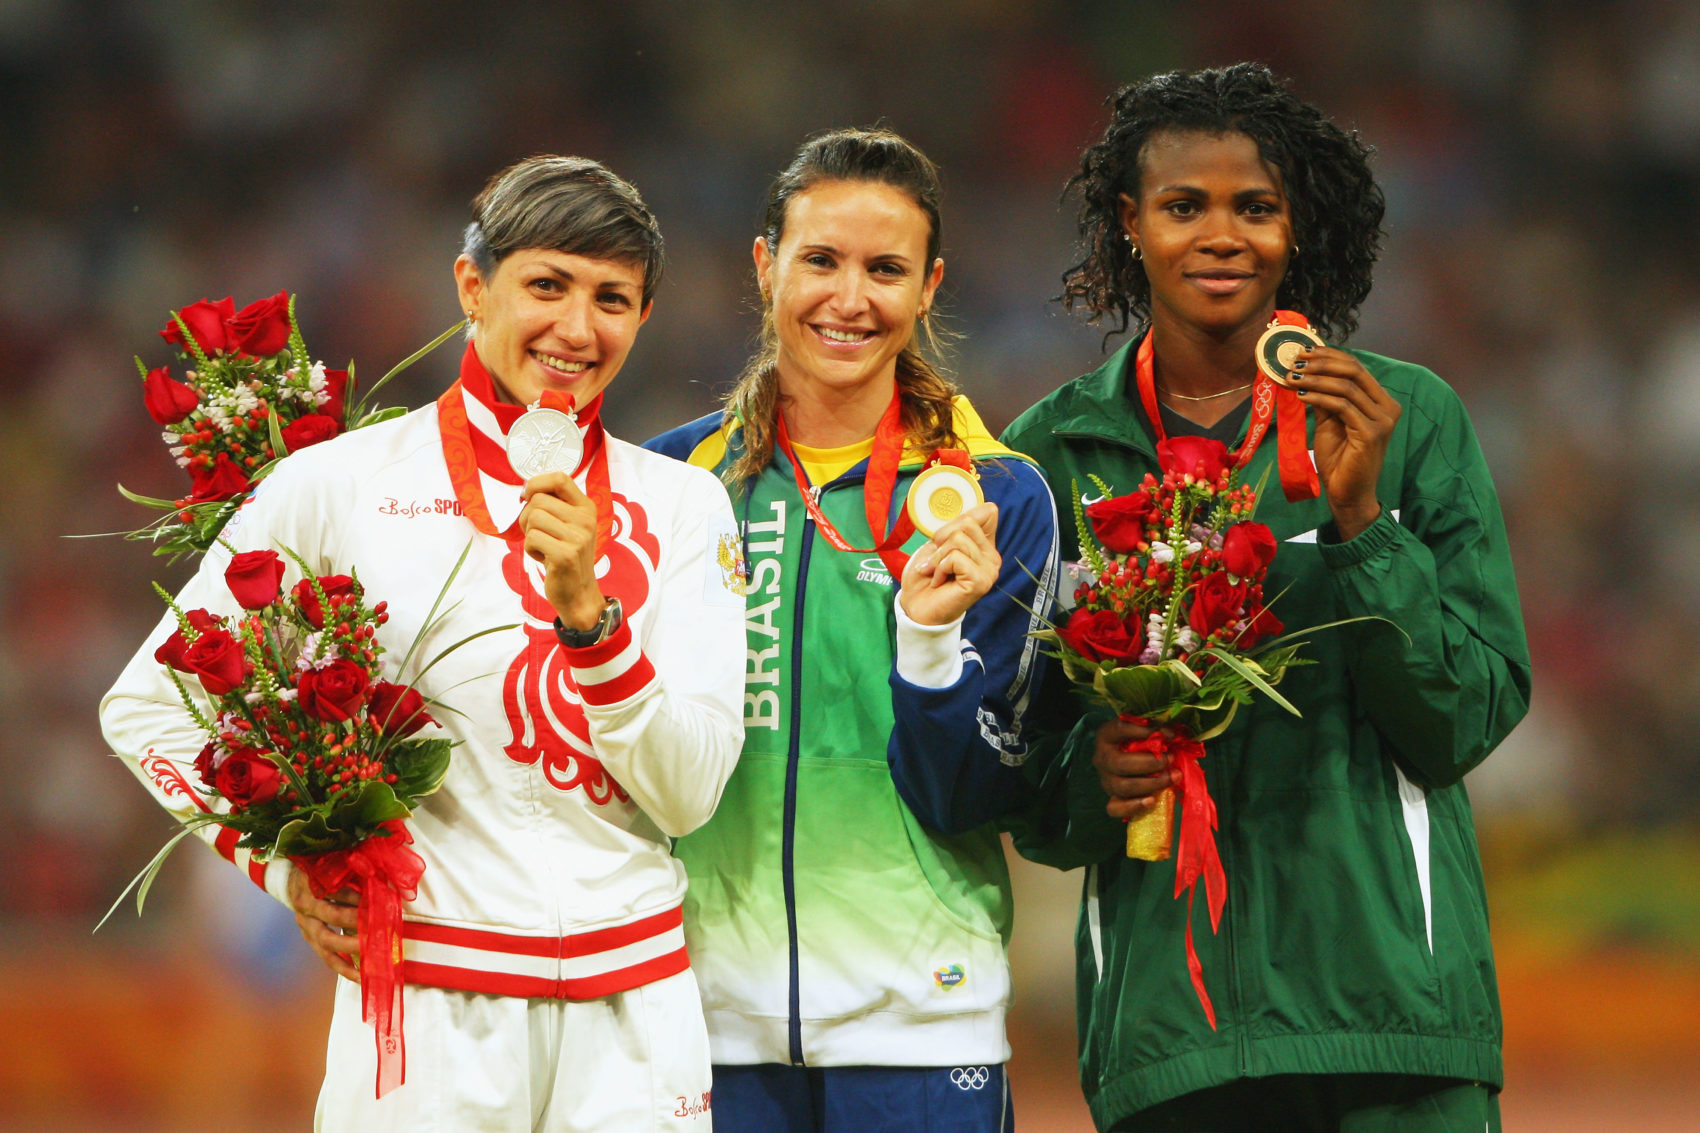 Blessing Okagbare (right) receives her medal at the 2008 Olympic Games. Tatyana Lebedeva (left) was later disqualified for doping and stripped of her silver medal. (Stu Forster/Getty Images)